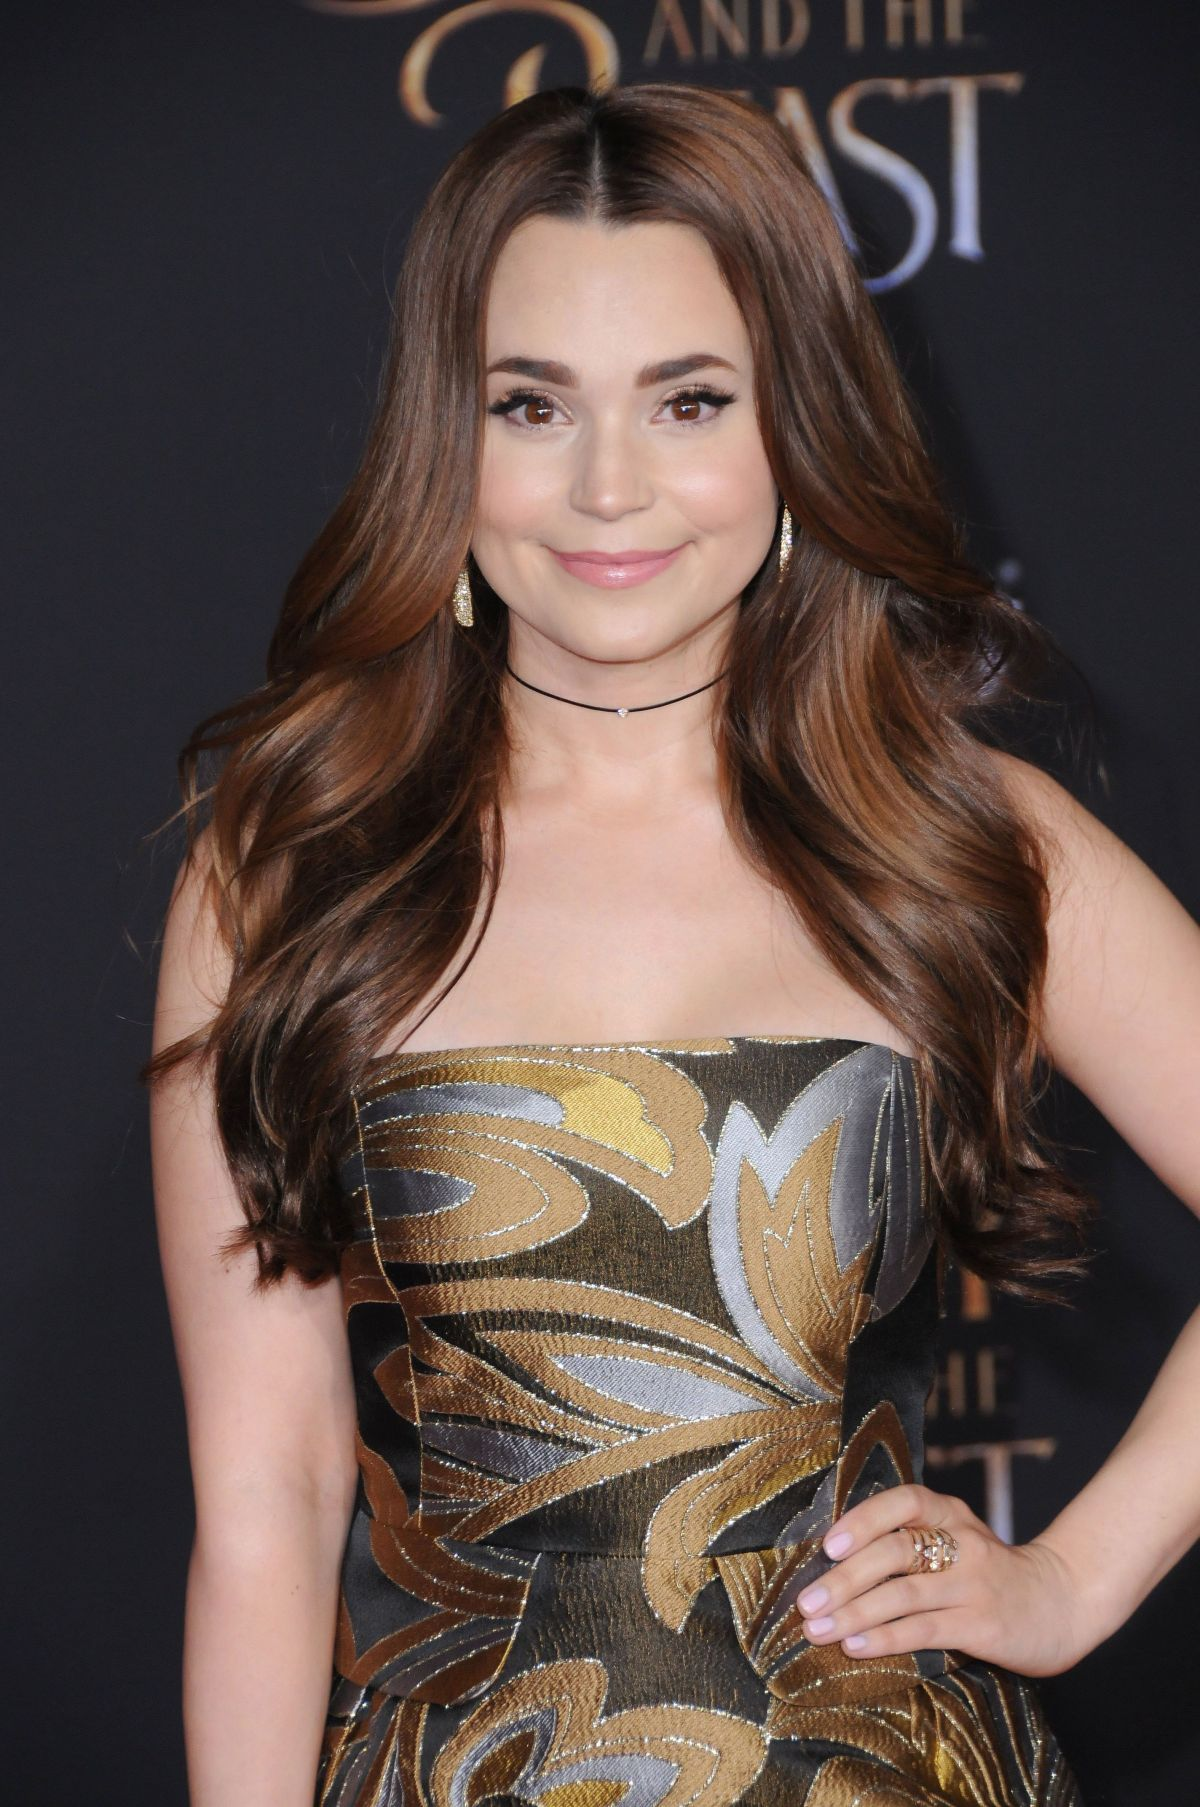 ROSANNA PANSINO at Beauty and the Beast Premiere in Los Angeles 03/02/2017